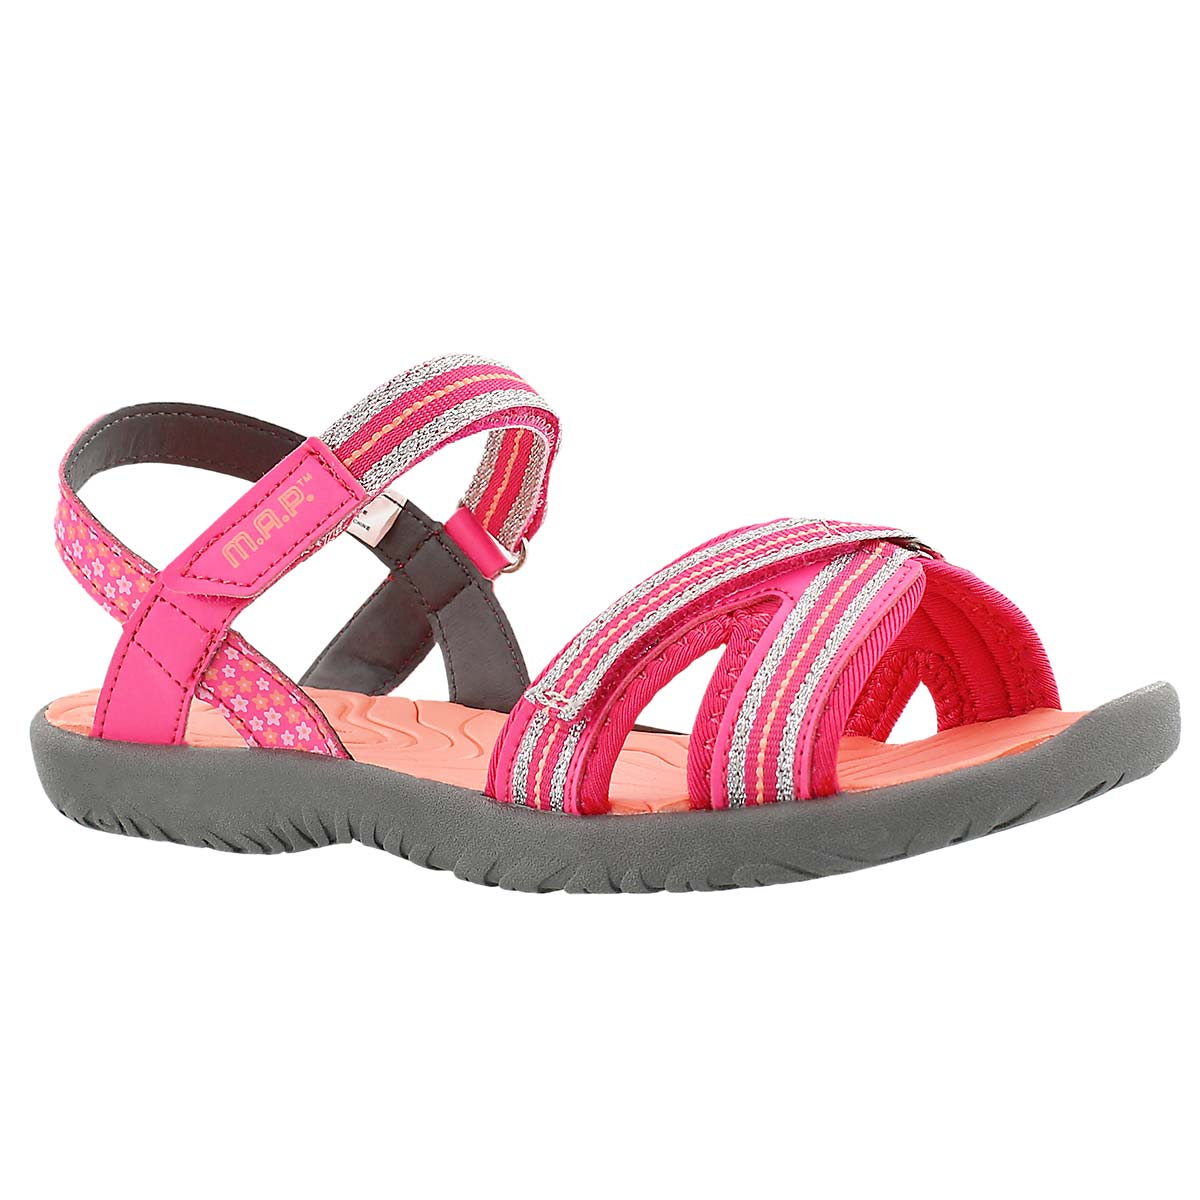 Girls' CARMI pink/coral casual sandals